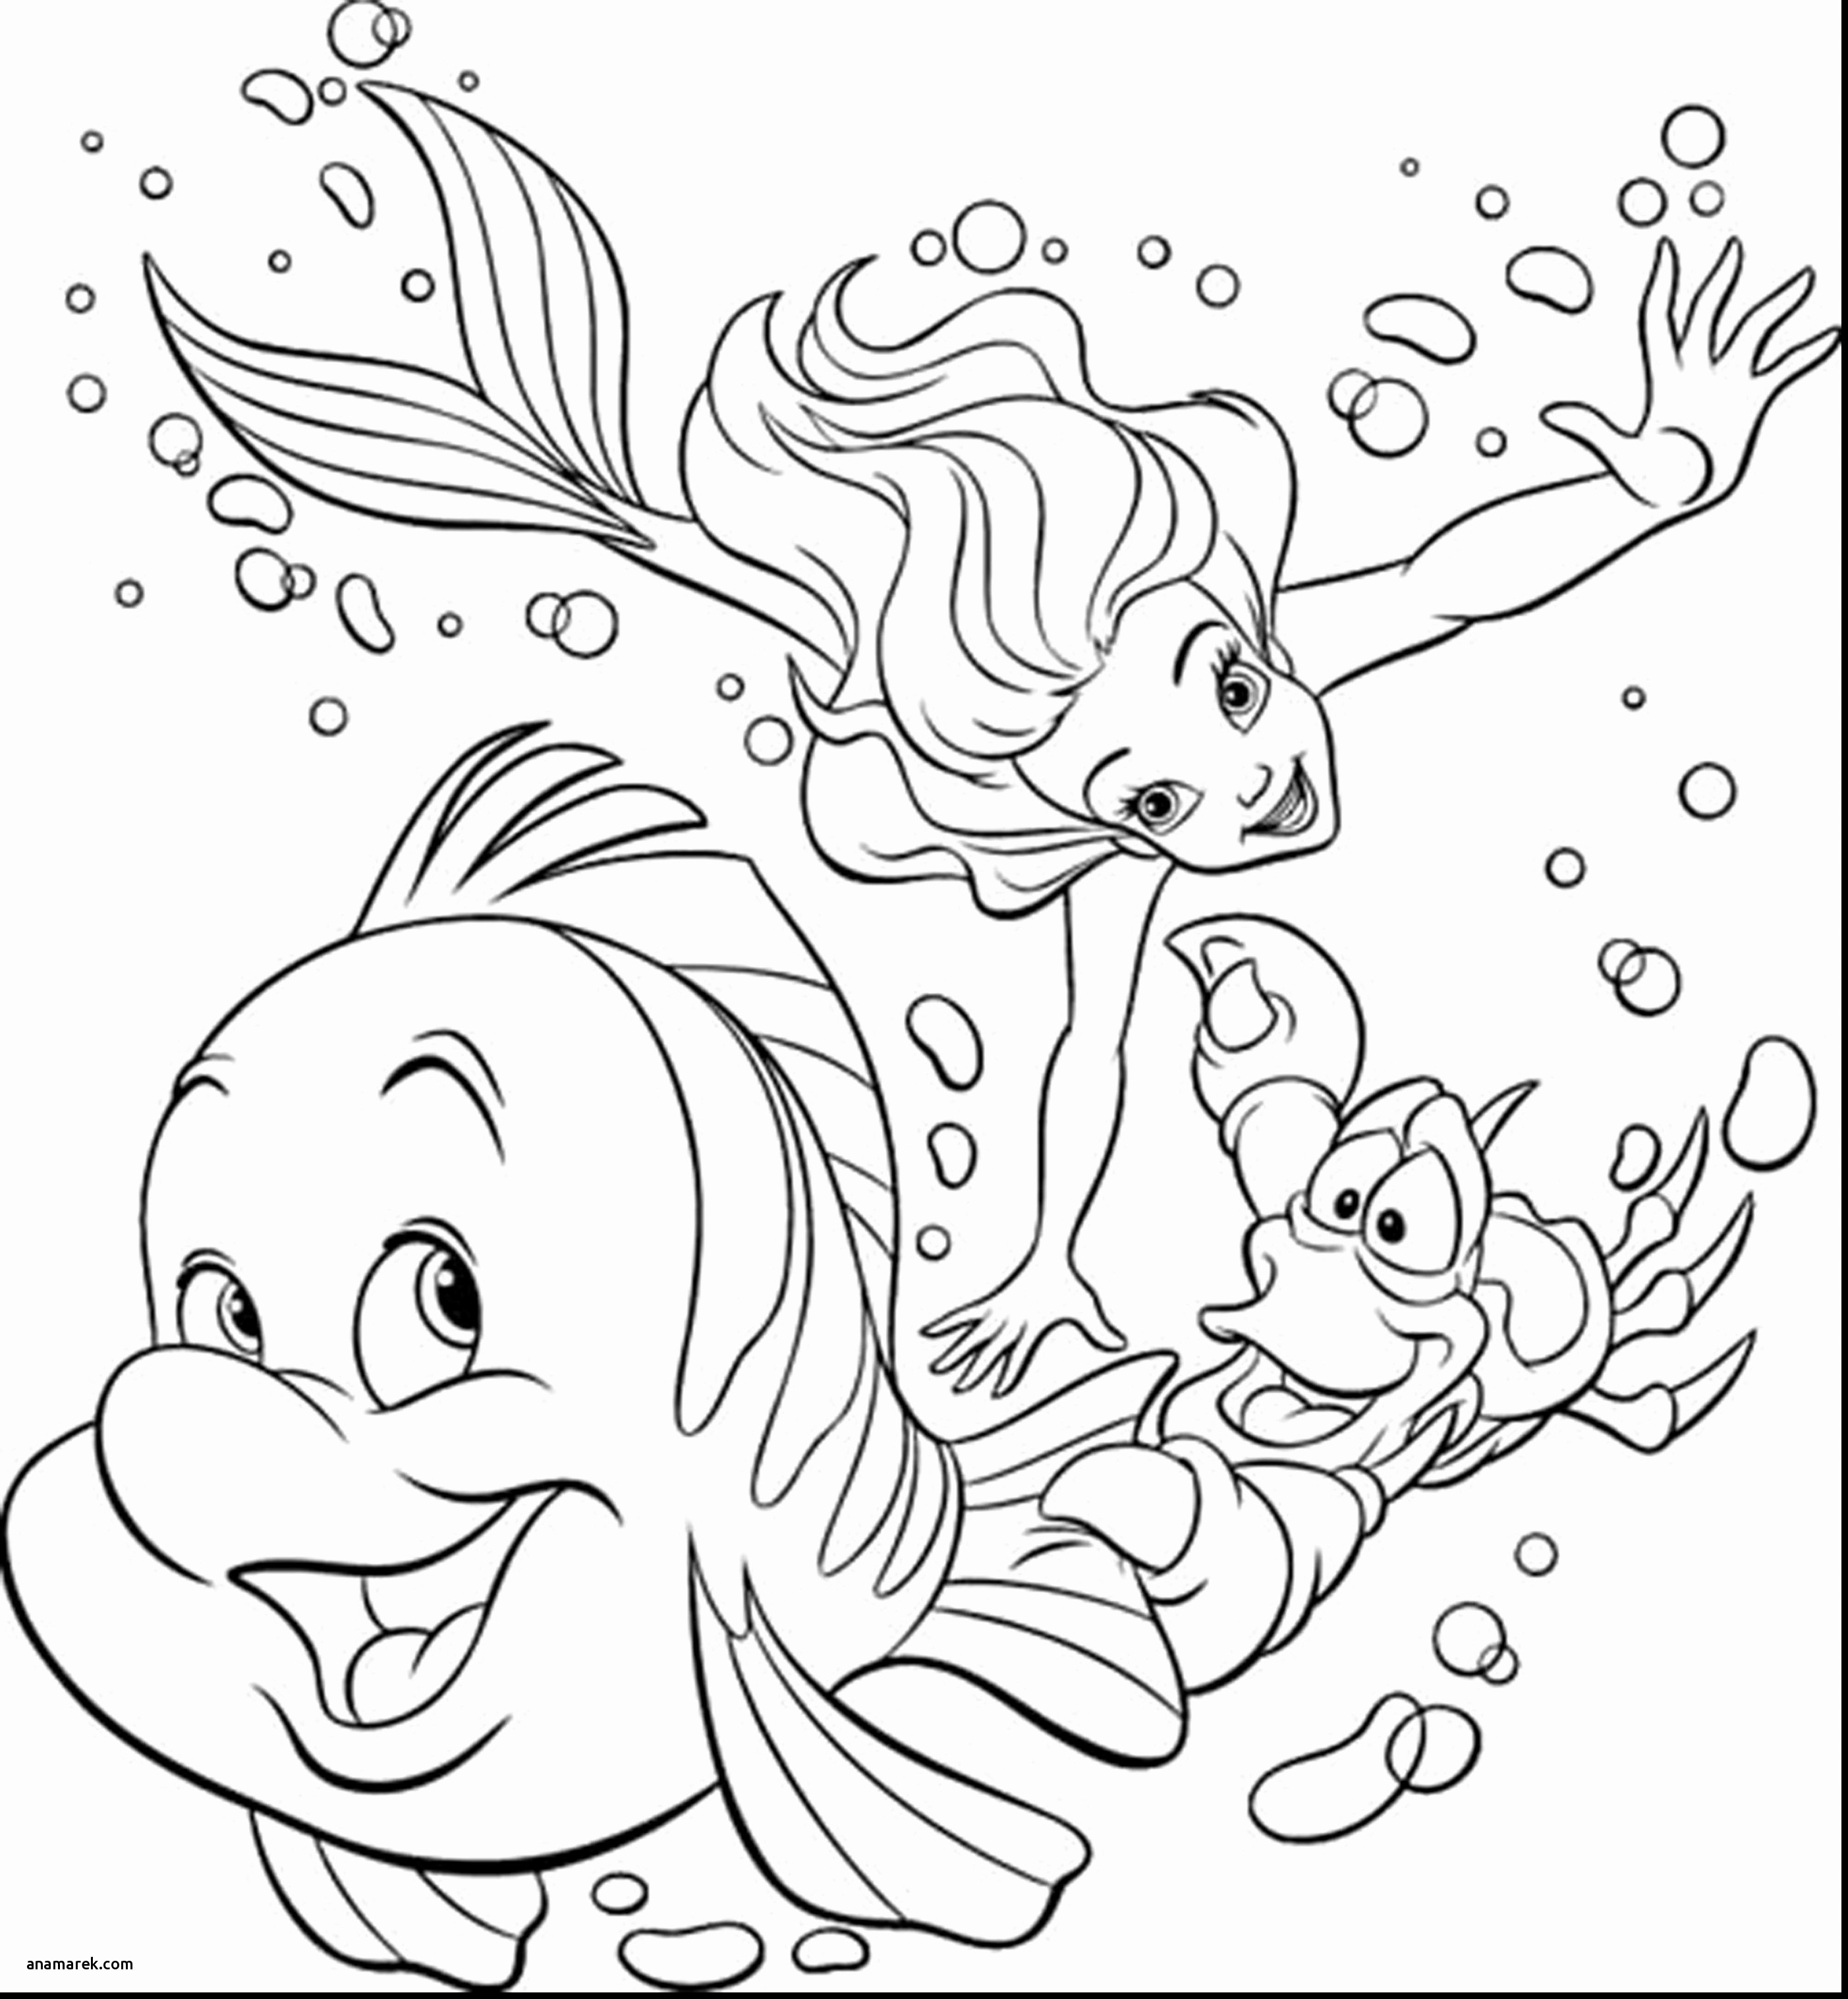 Disney Coloring Pages Gallery 8c - Free For Children